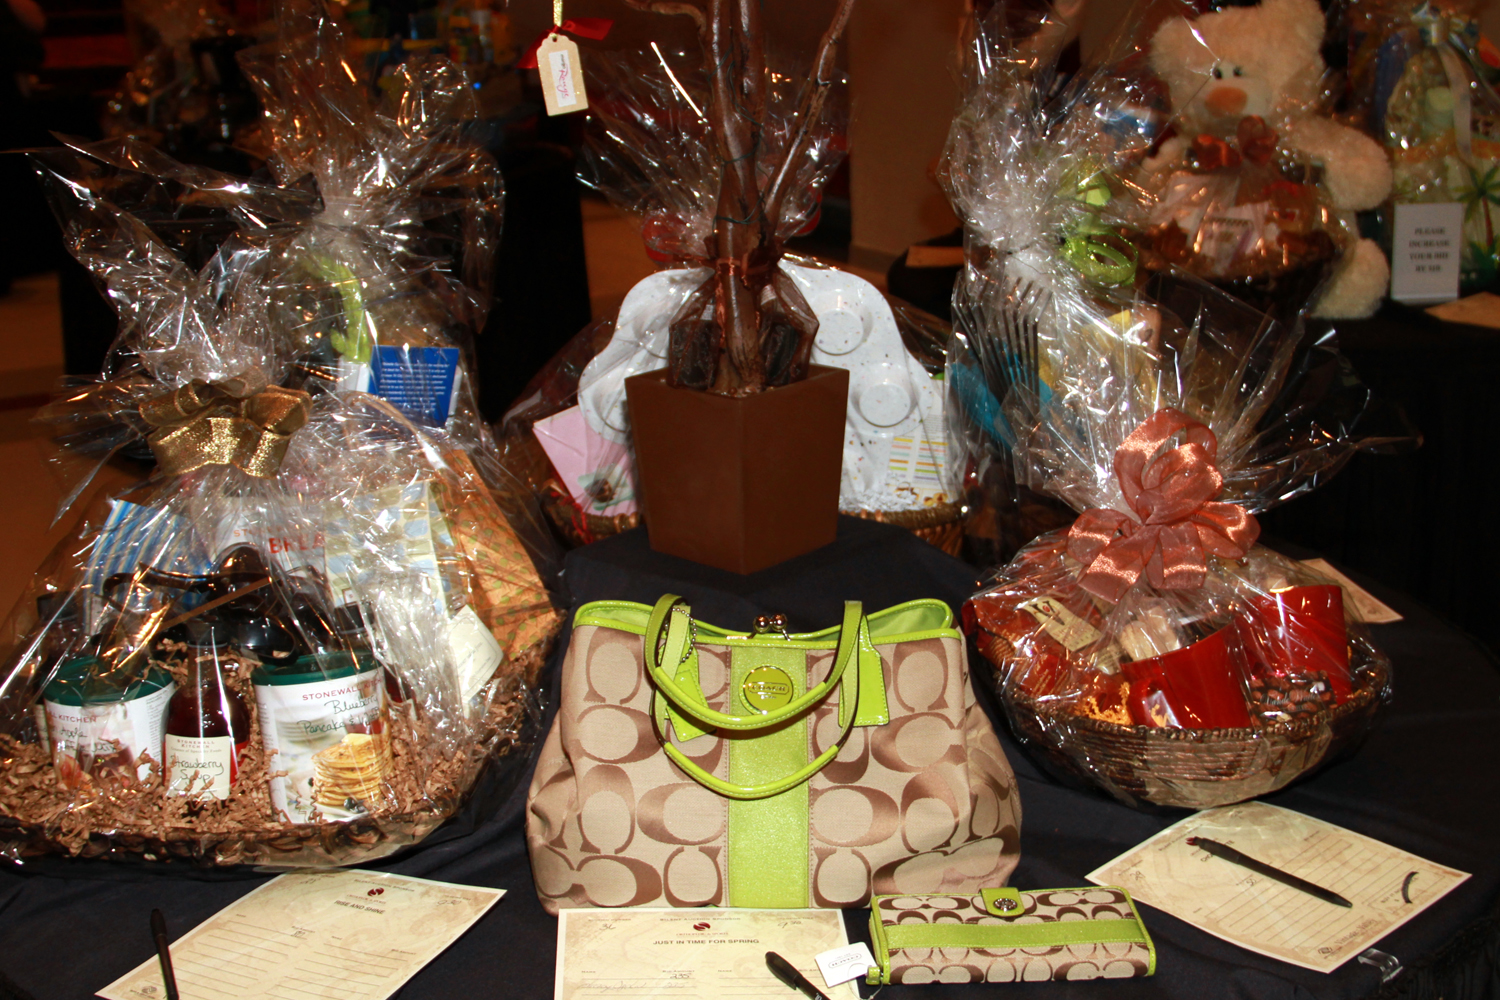 Vintage in the Valley has many raffle and silent auction items on display. (2011)